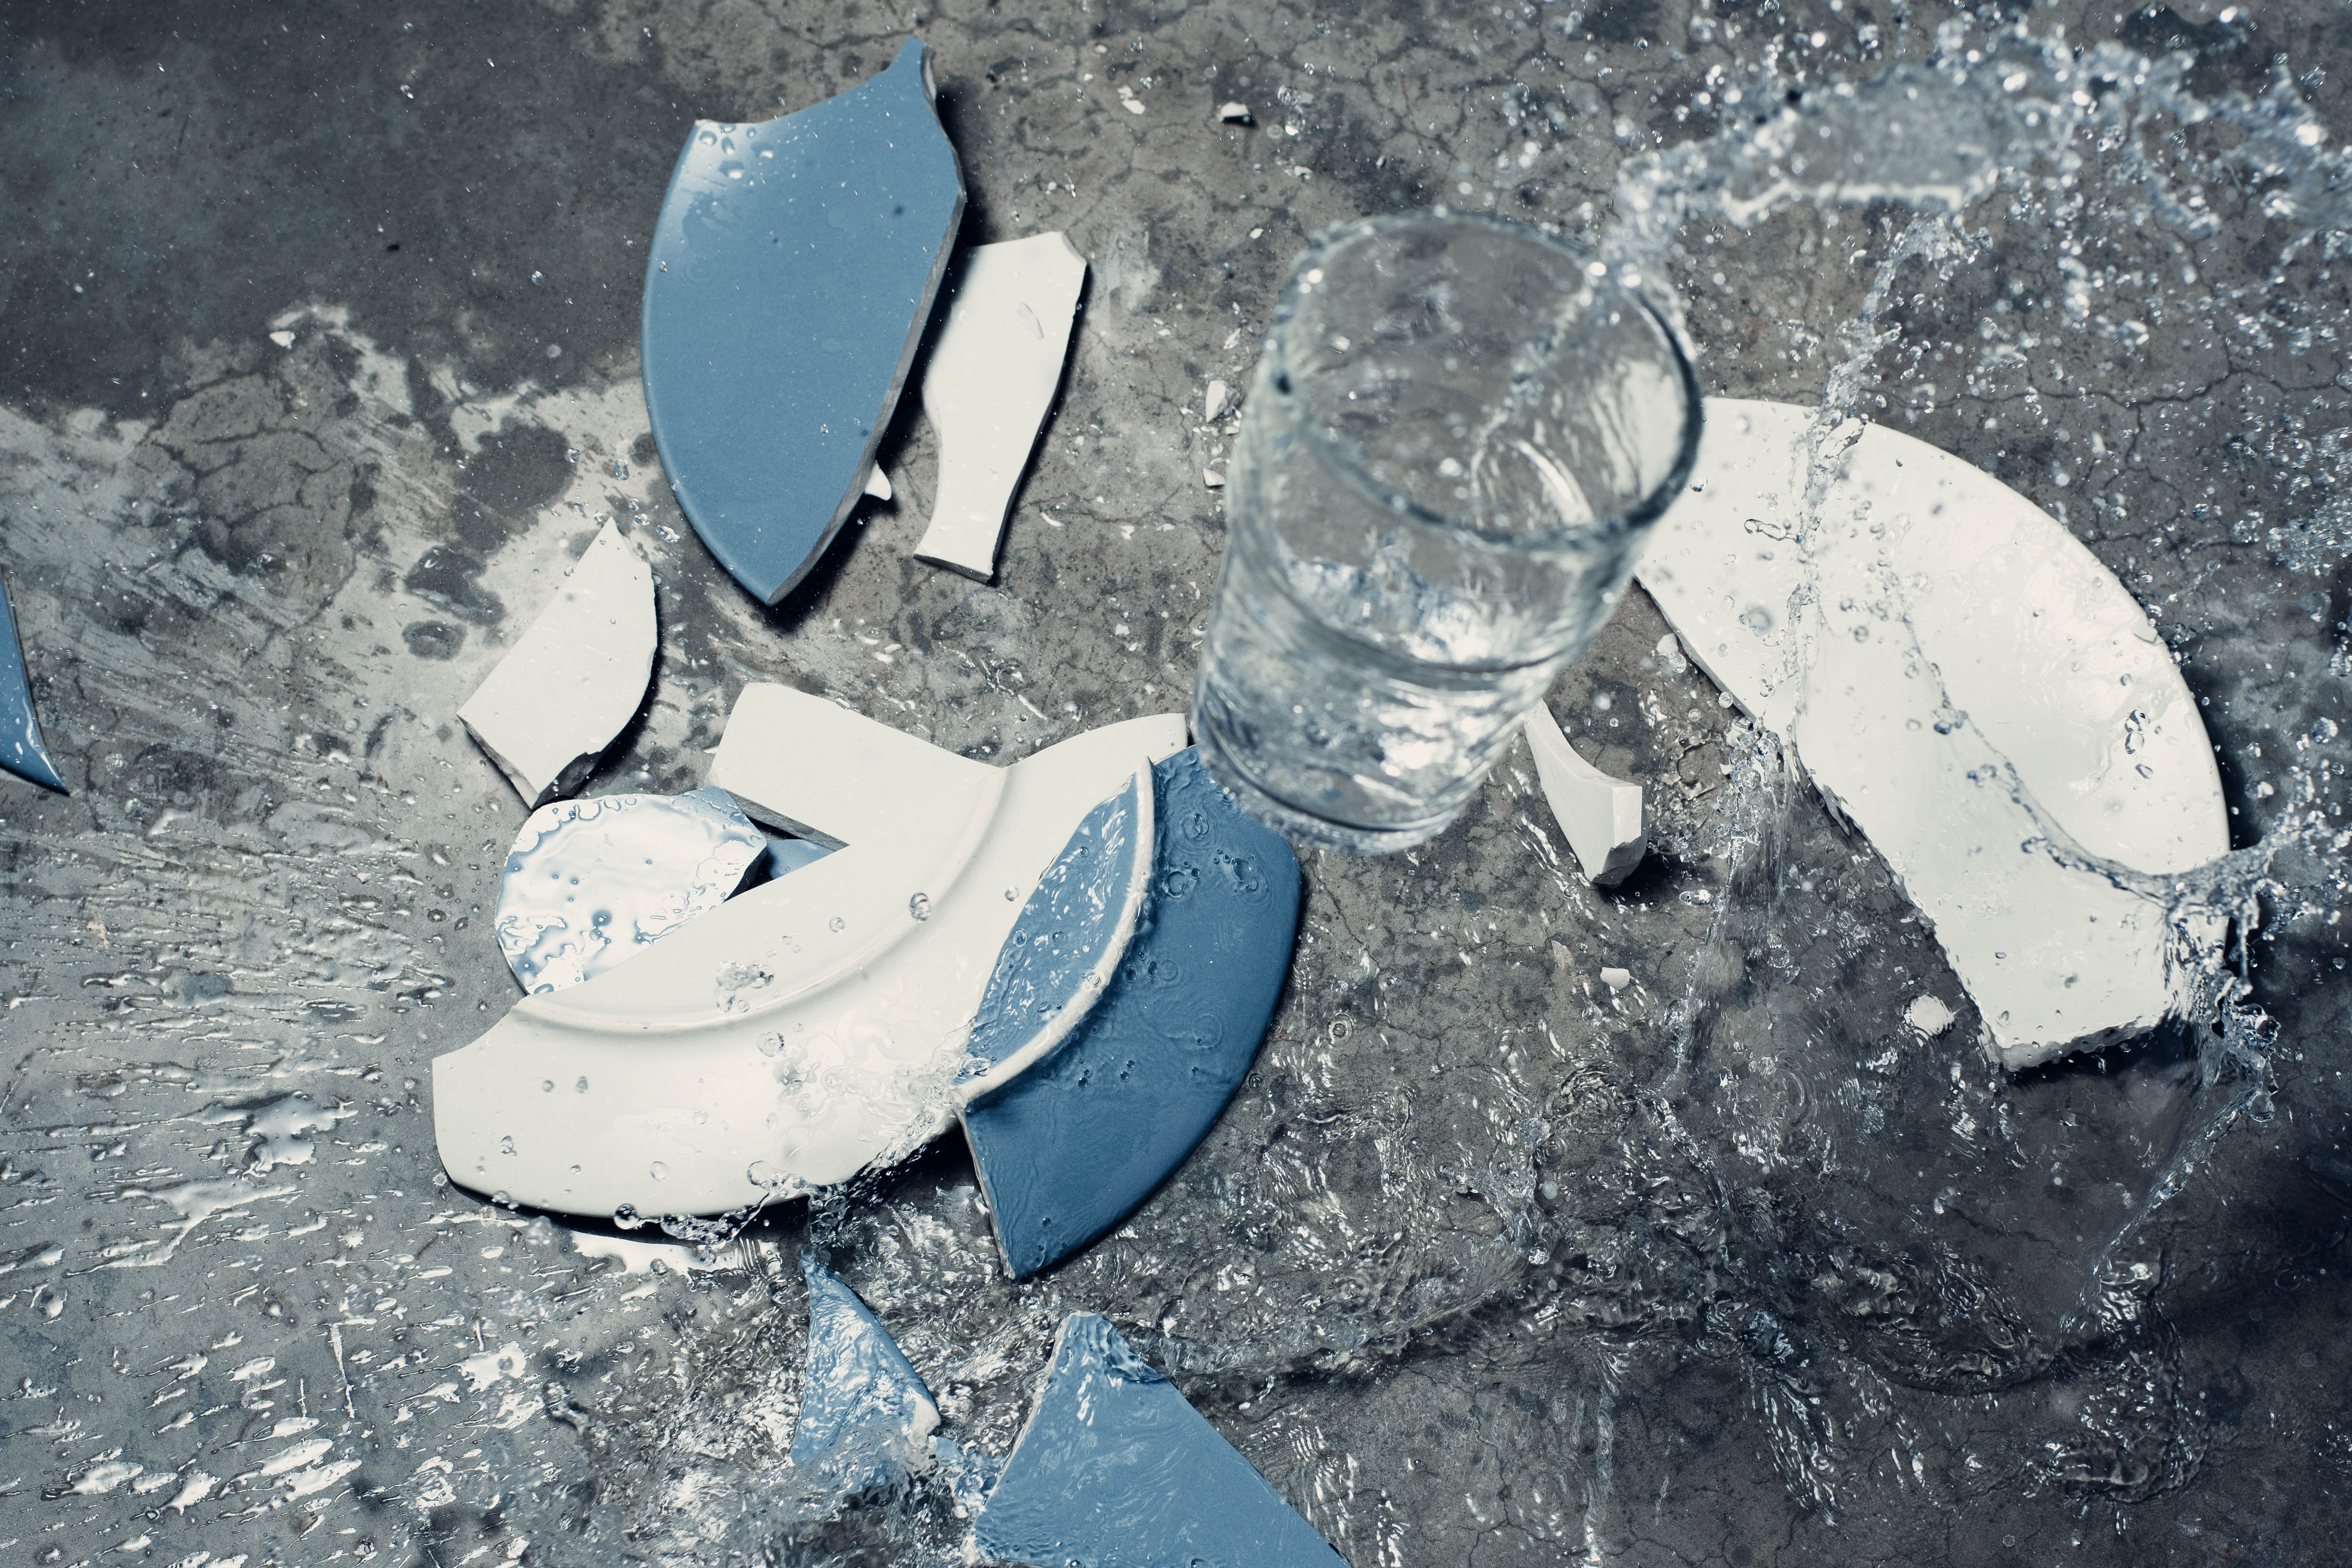 broken white and blue ceramic plate and clear beverage glass with water